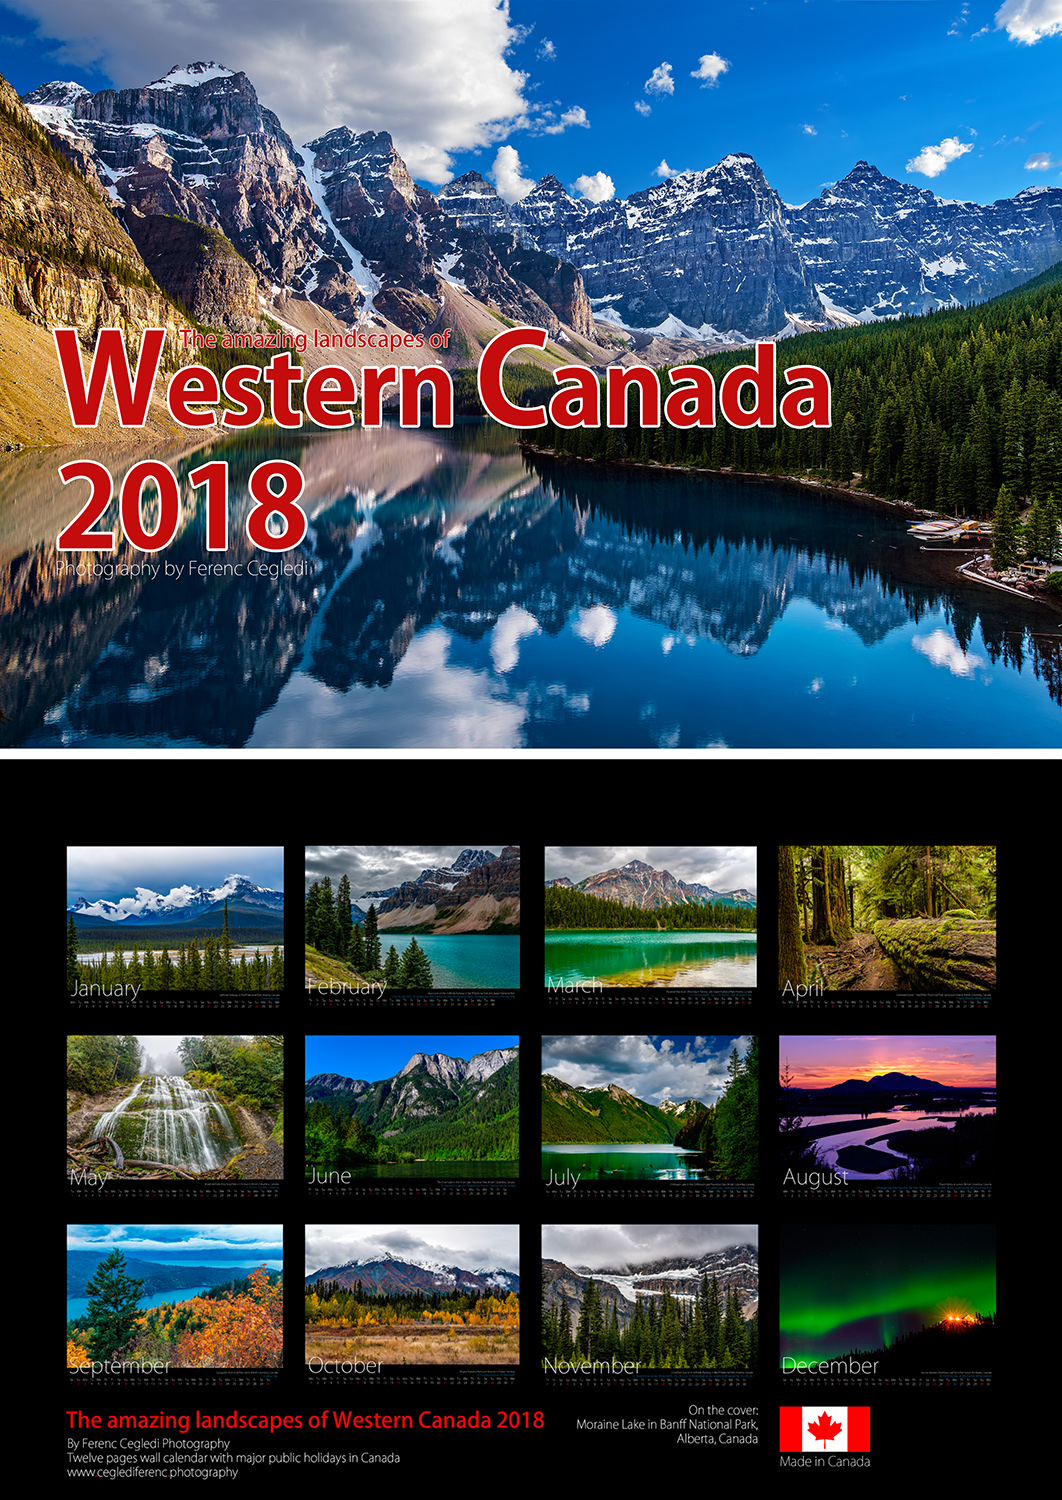 The amazing landscapes of Western Canada 2018 Wall Calendar